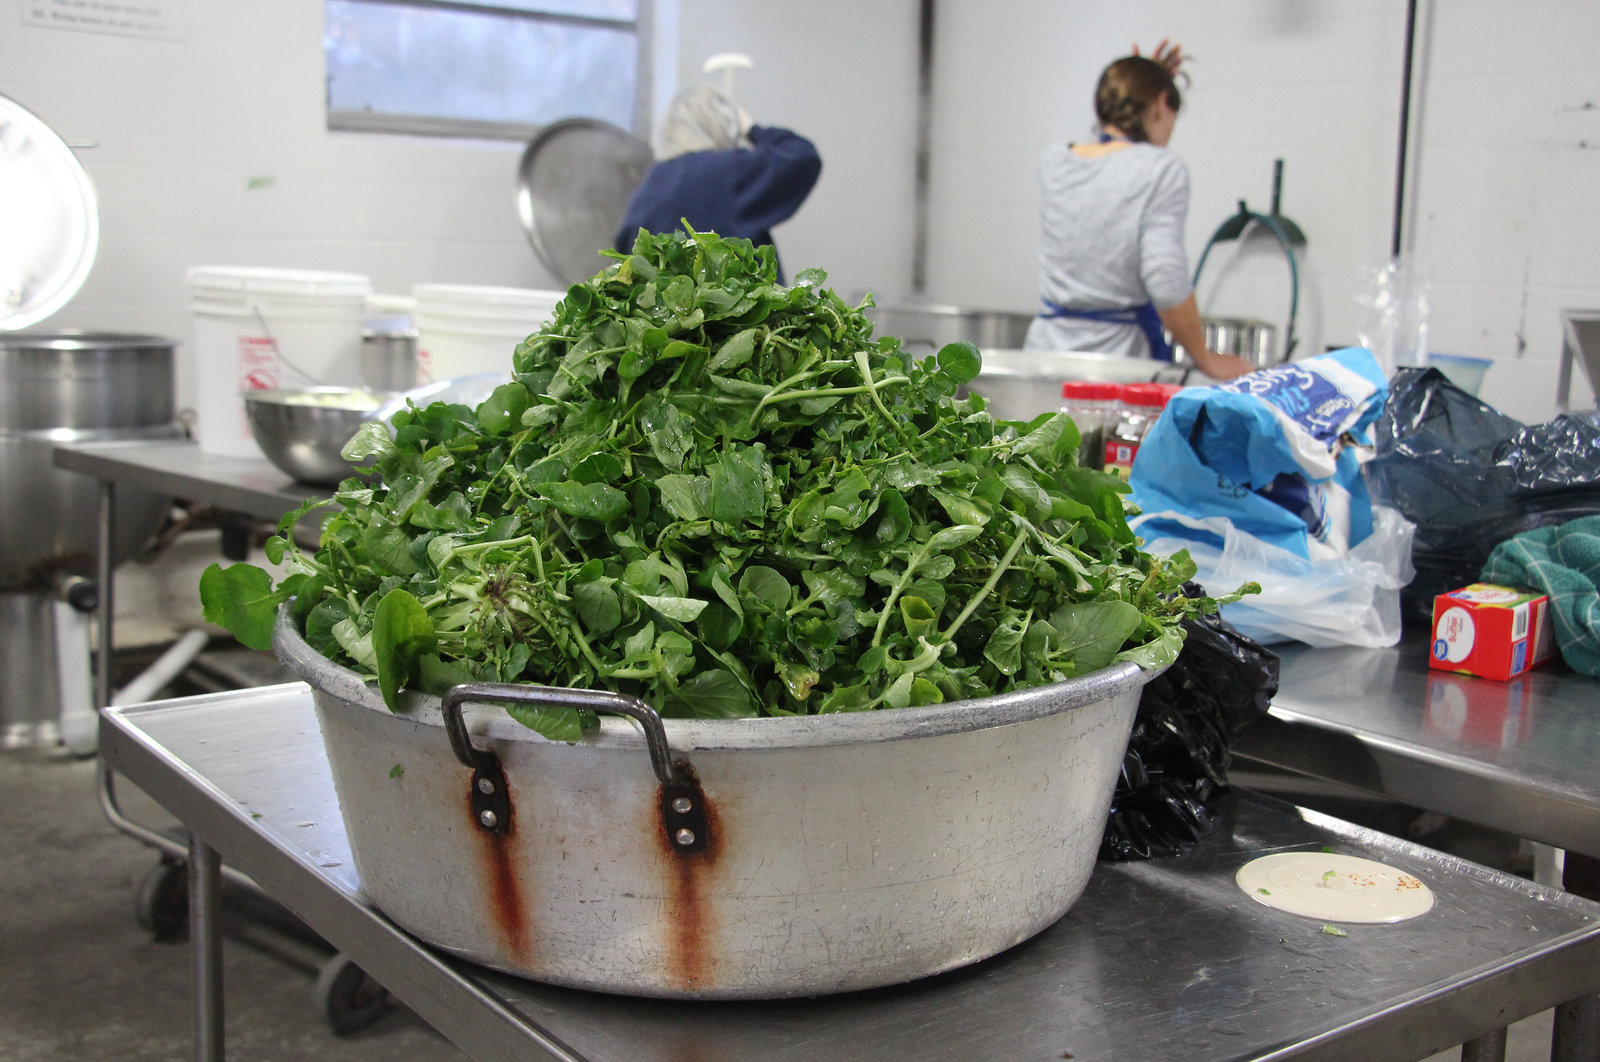 Rhonda Mayberry's creasy greens, ready to be cooked and canned.